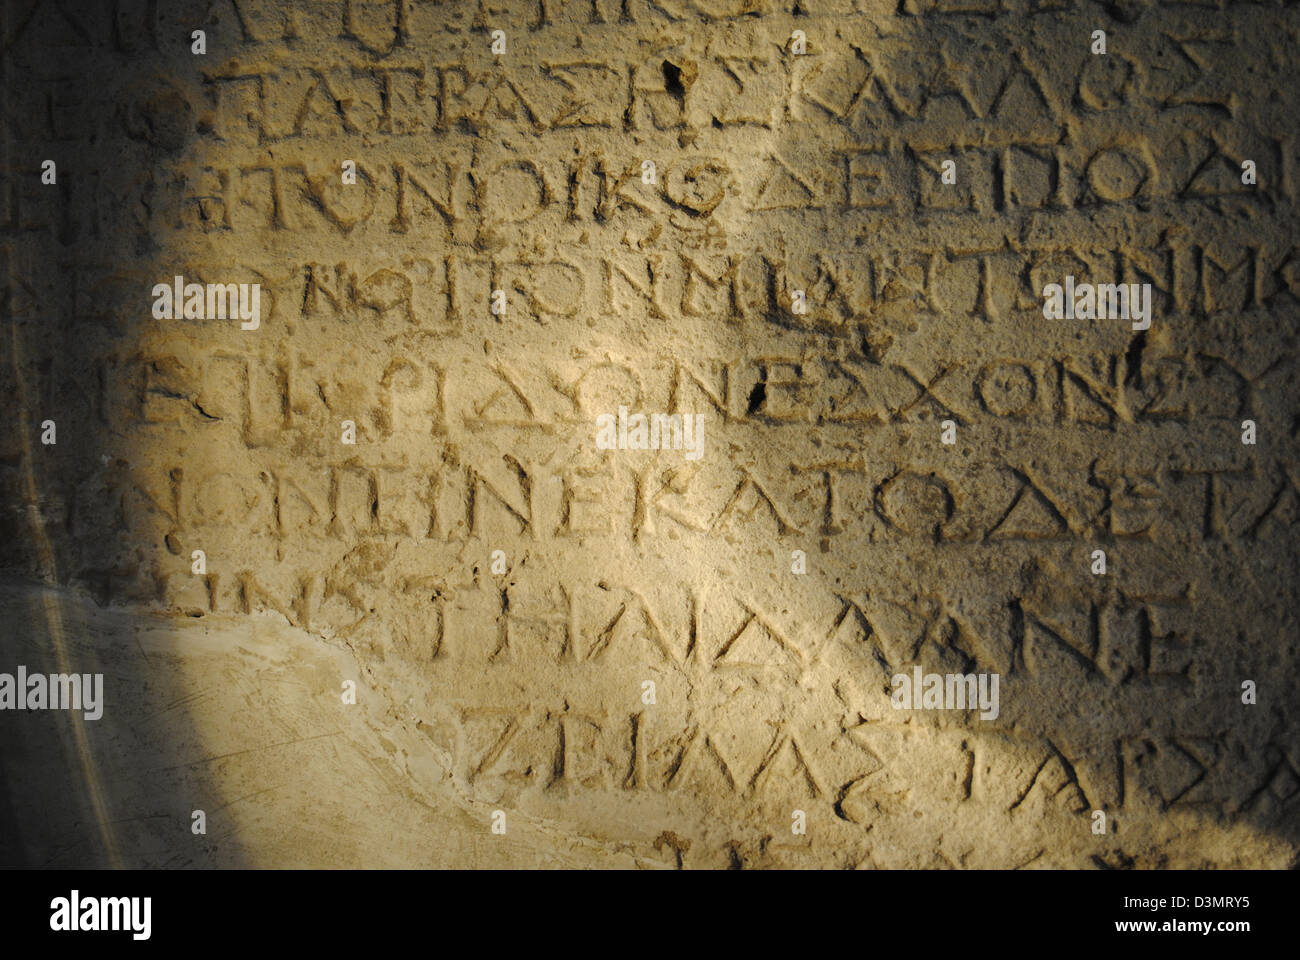 Funerary headstone with Greek inscription. Detail. Kerch Historical and Archaeological Museum. - Stock Image